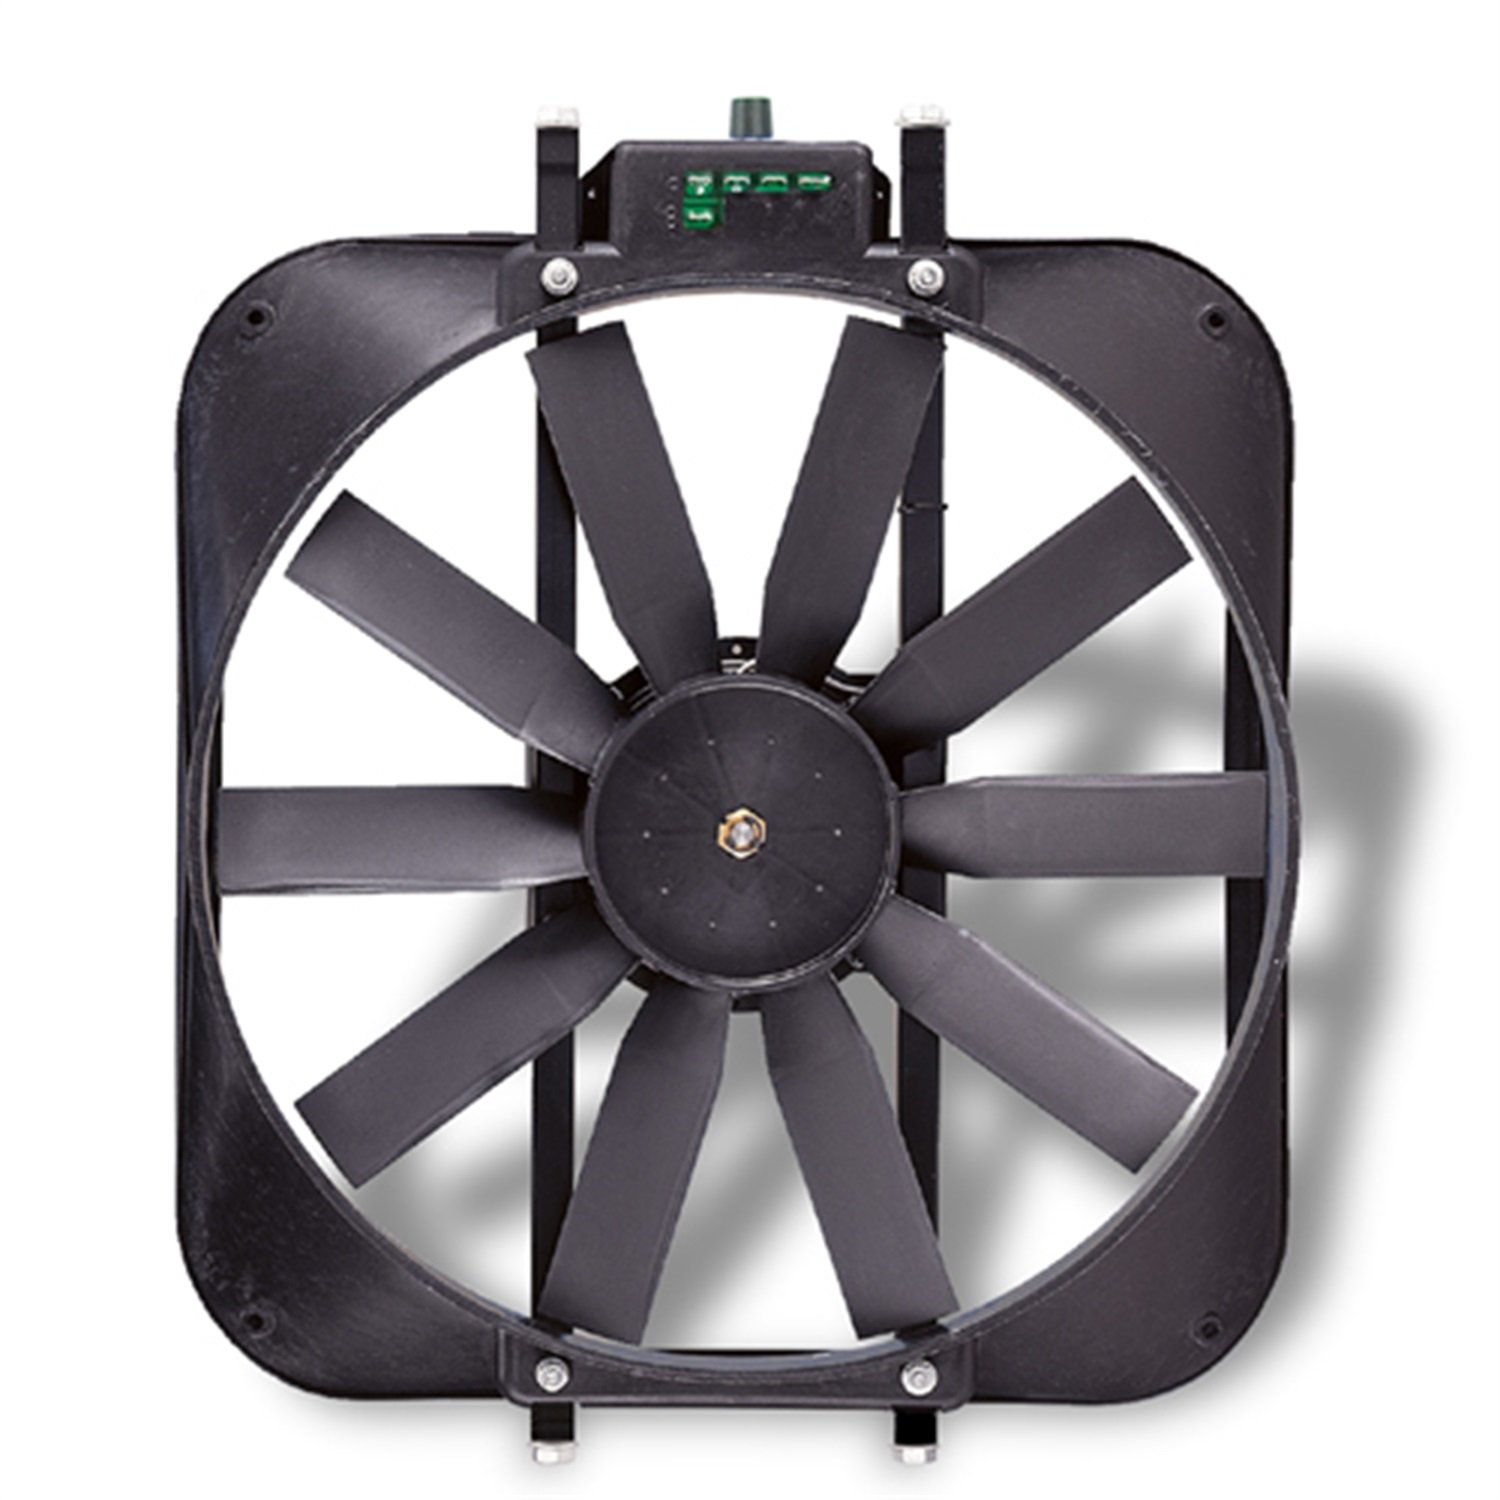 Flex-a-lite 35 Electra-Fan II 15' Electric Fan